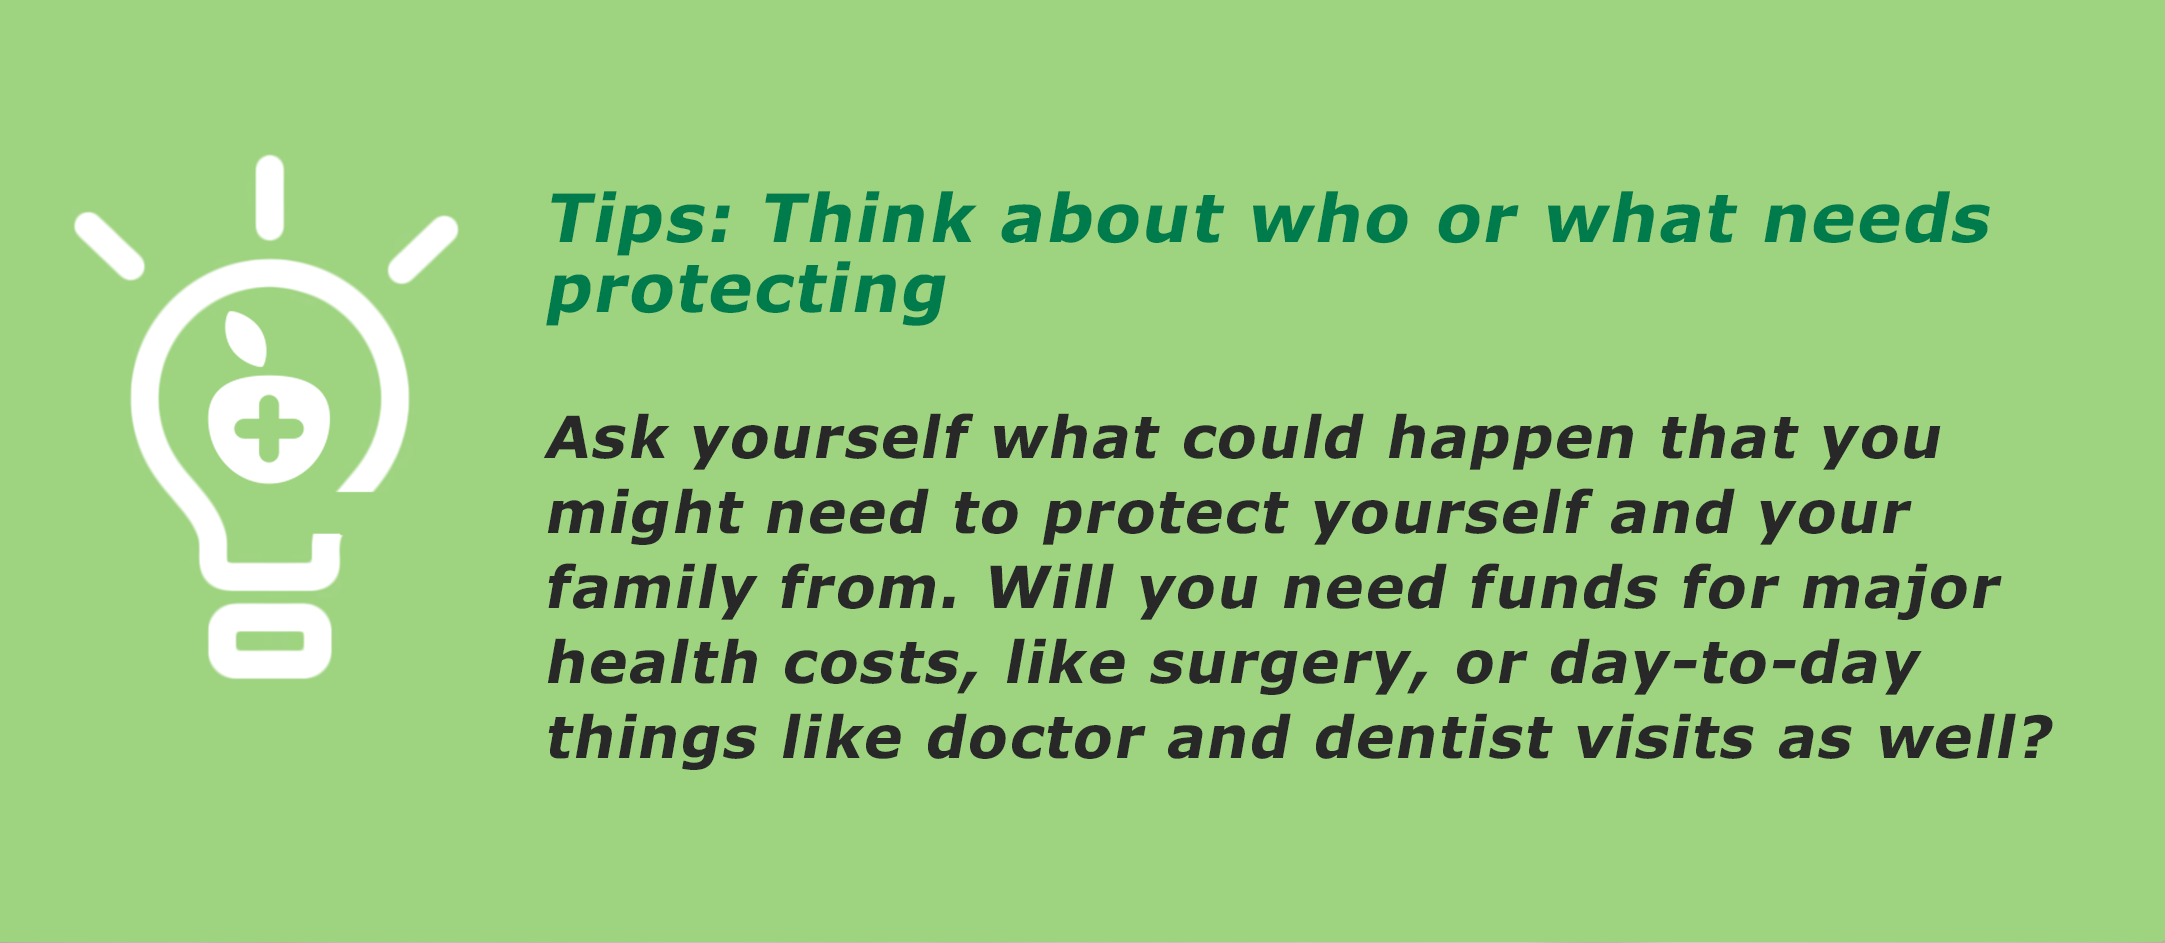 health insurance guide-tip2